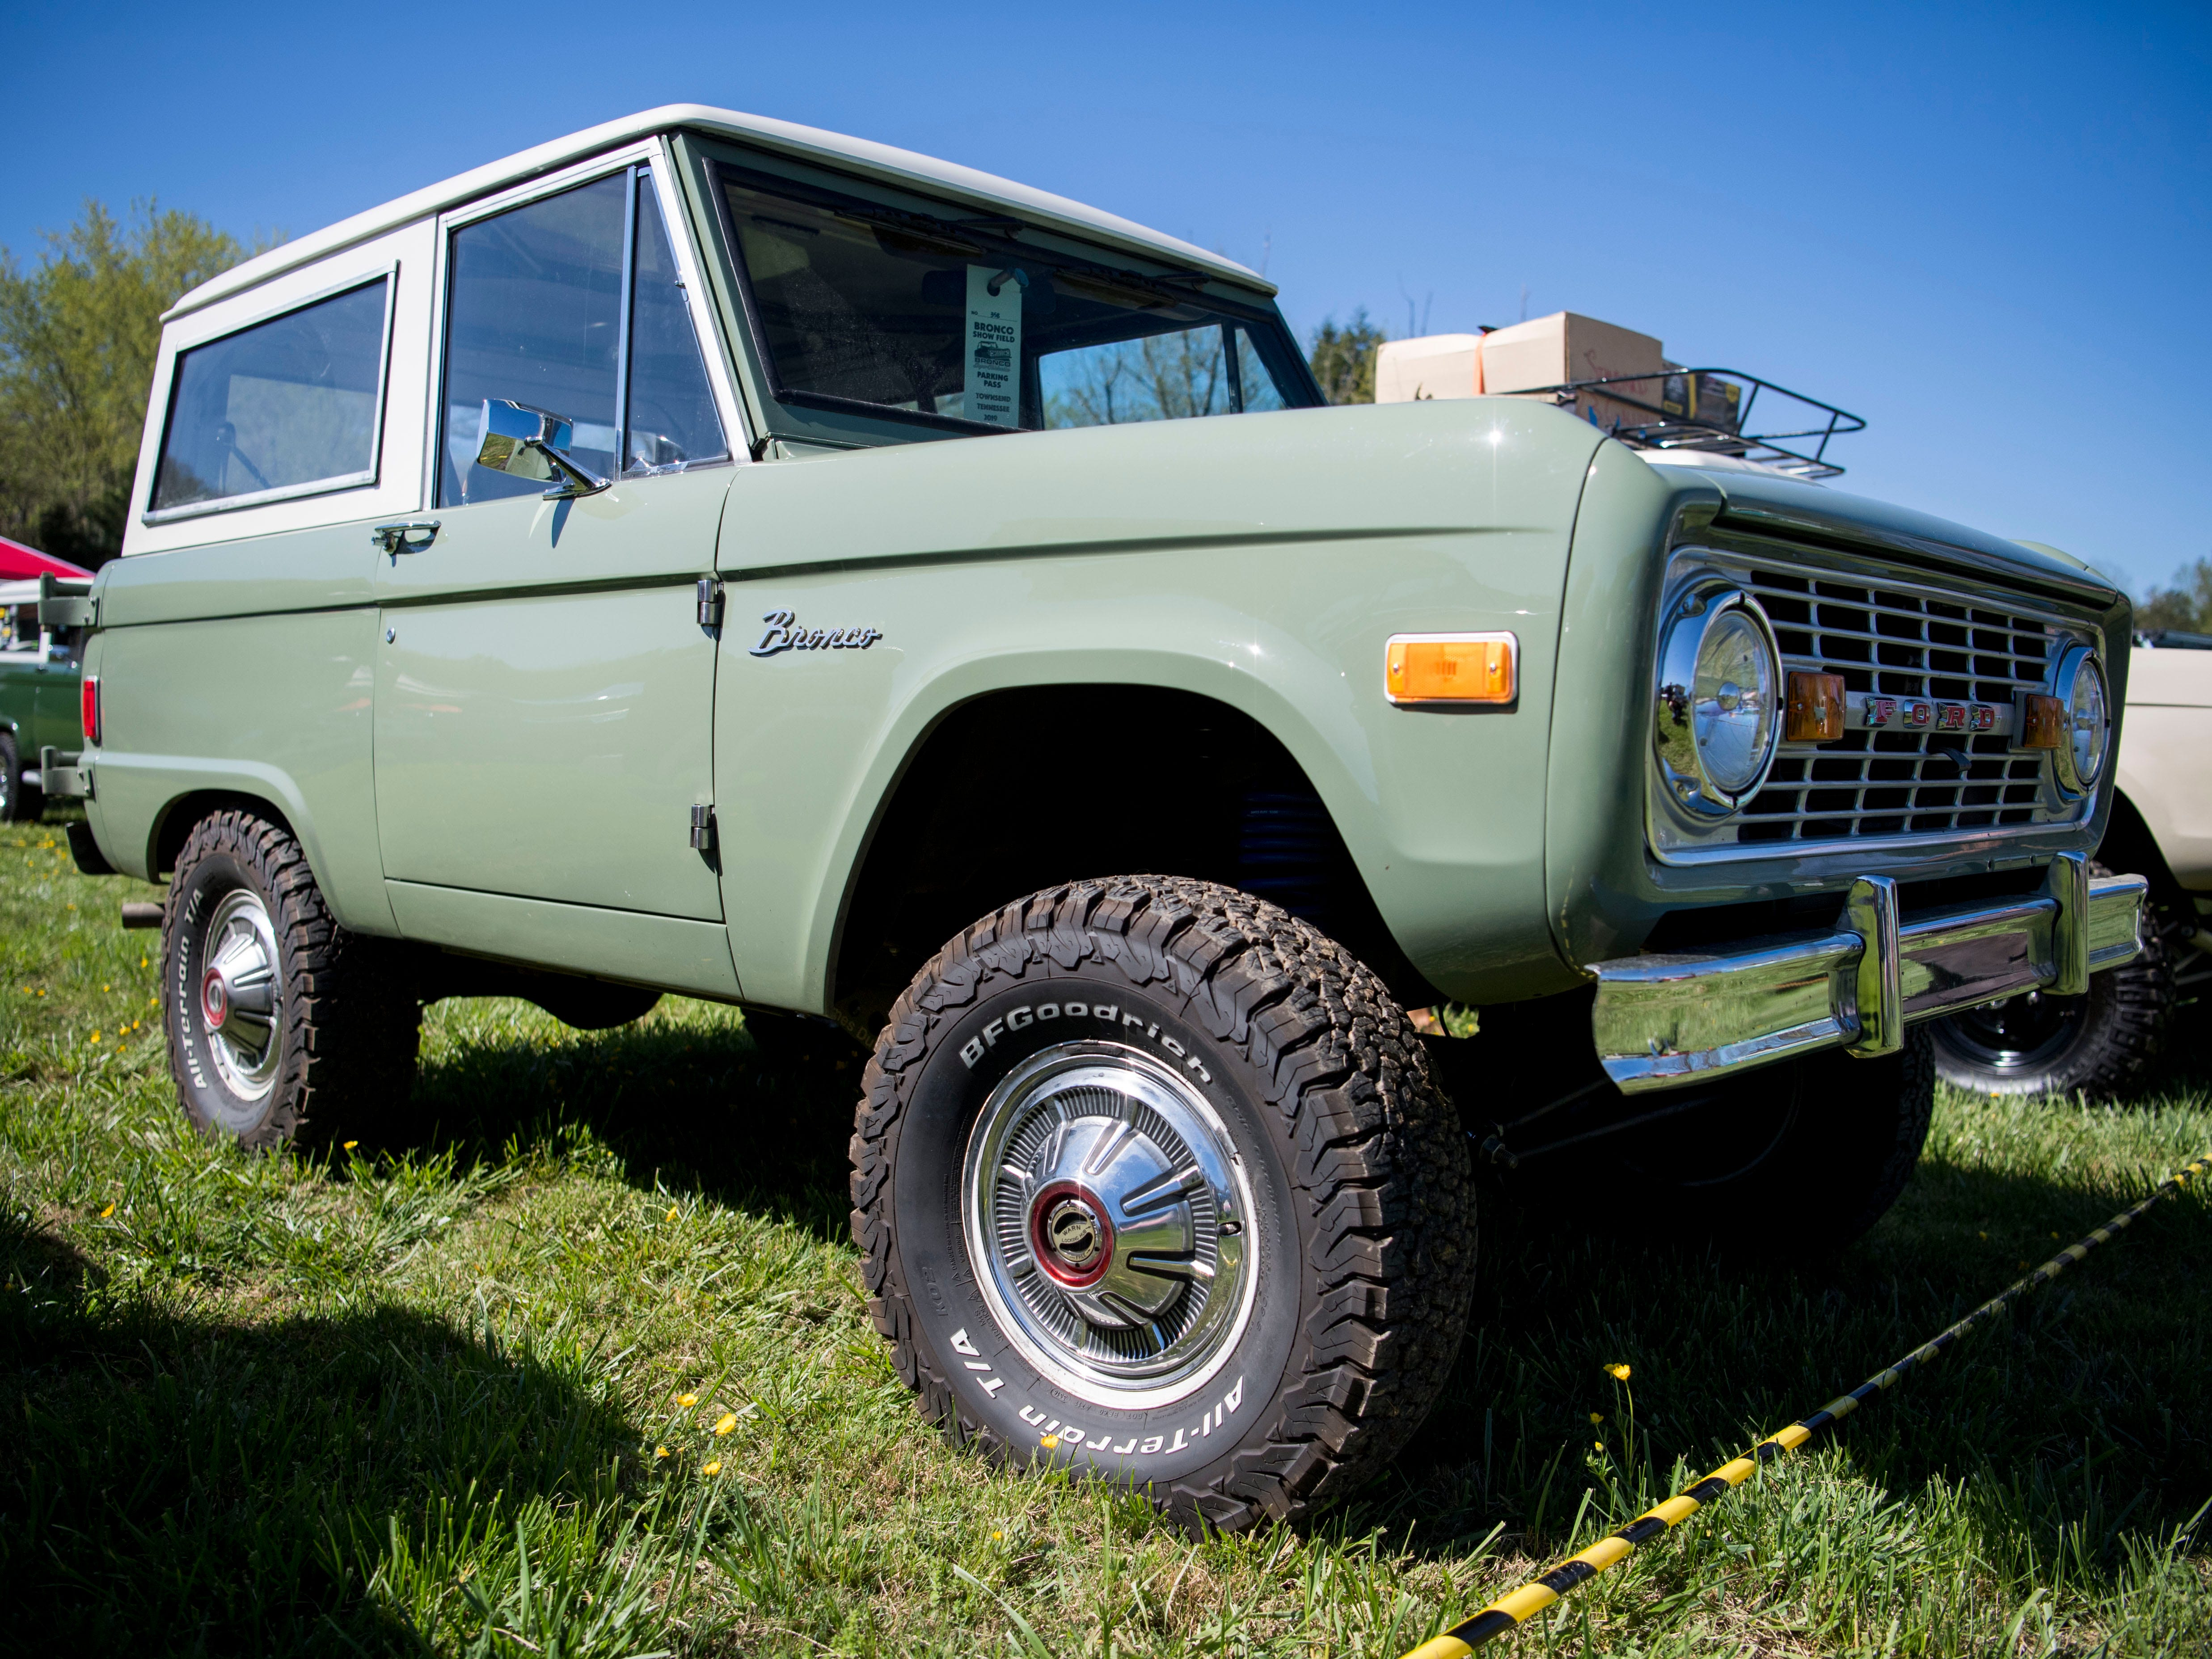 A Ford Bronco on display at the Super Bronco Celebration event held at Tally Ho Inn in Townsend, Tenn. Between 500 and 600 Broncos are expected at the event, which will run from April 10, 2019, to April 13, 2019.